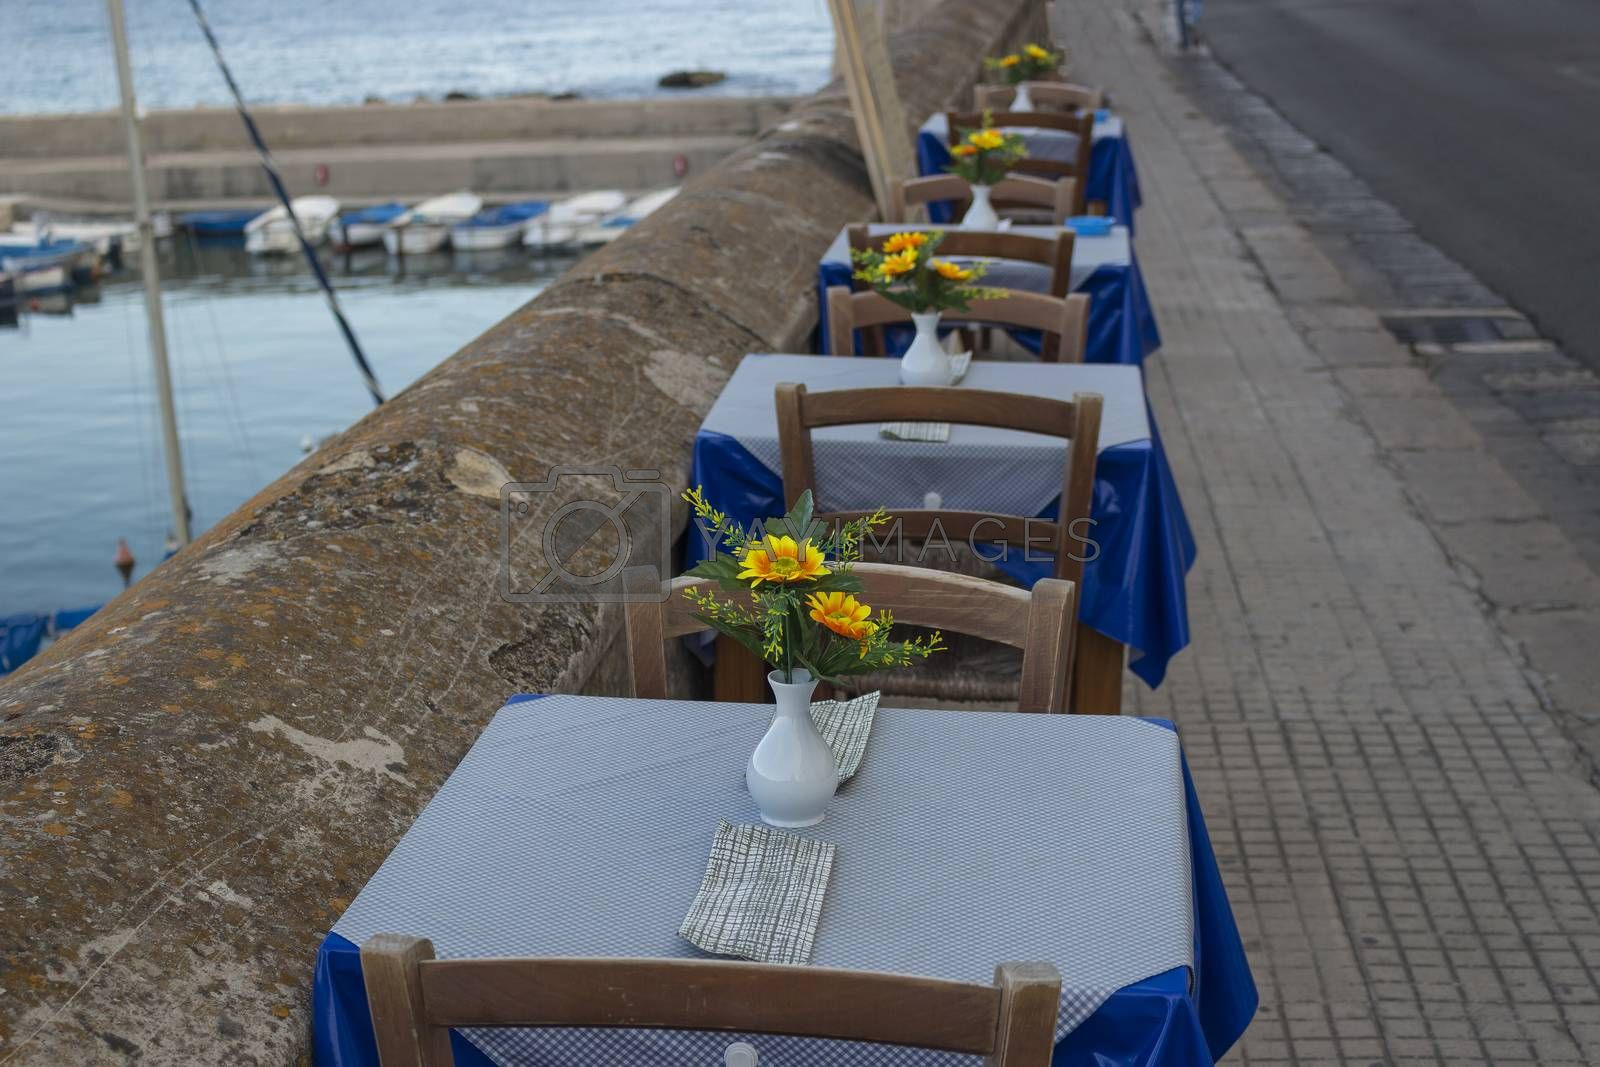 Restaurant on the sea bay between the Rivelino castle and the Church of Sain Mary of Canneto in the old town of Gallipoli (Le) in southern Italy